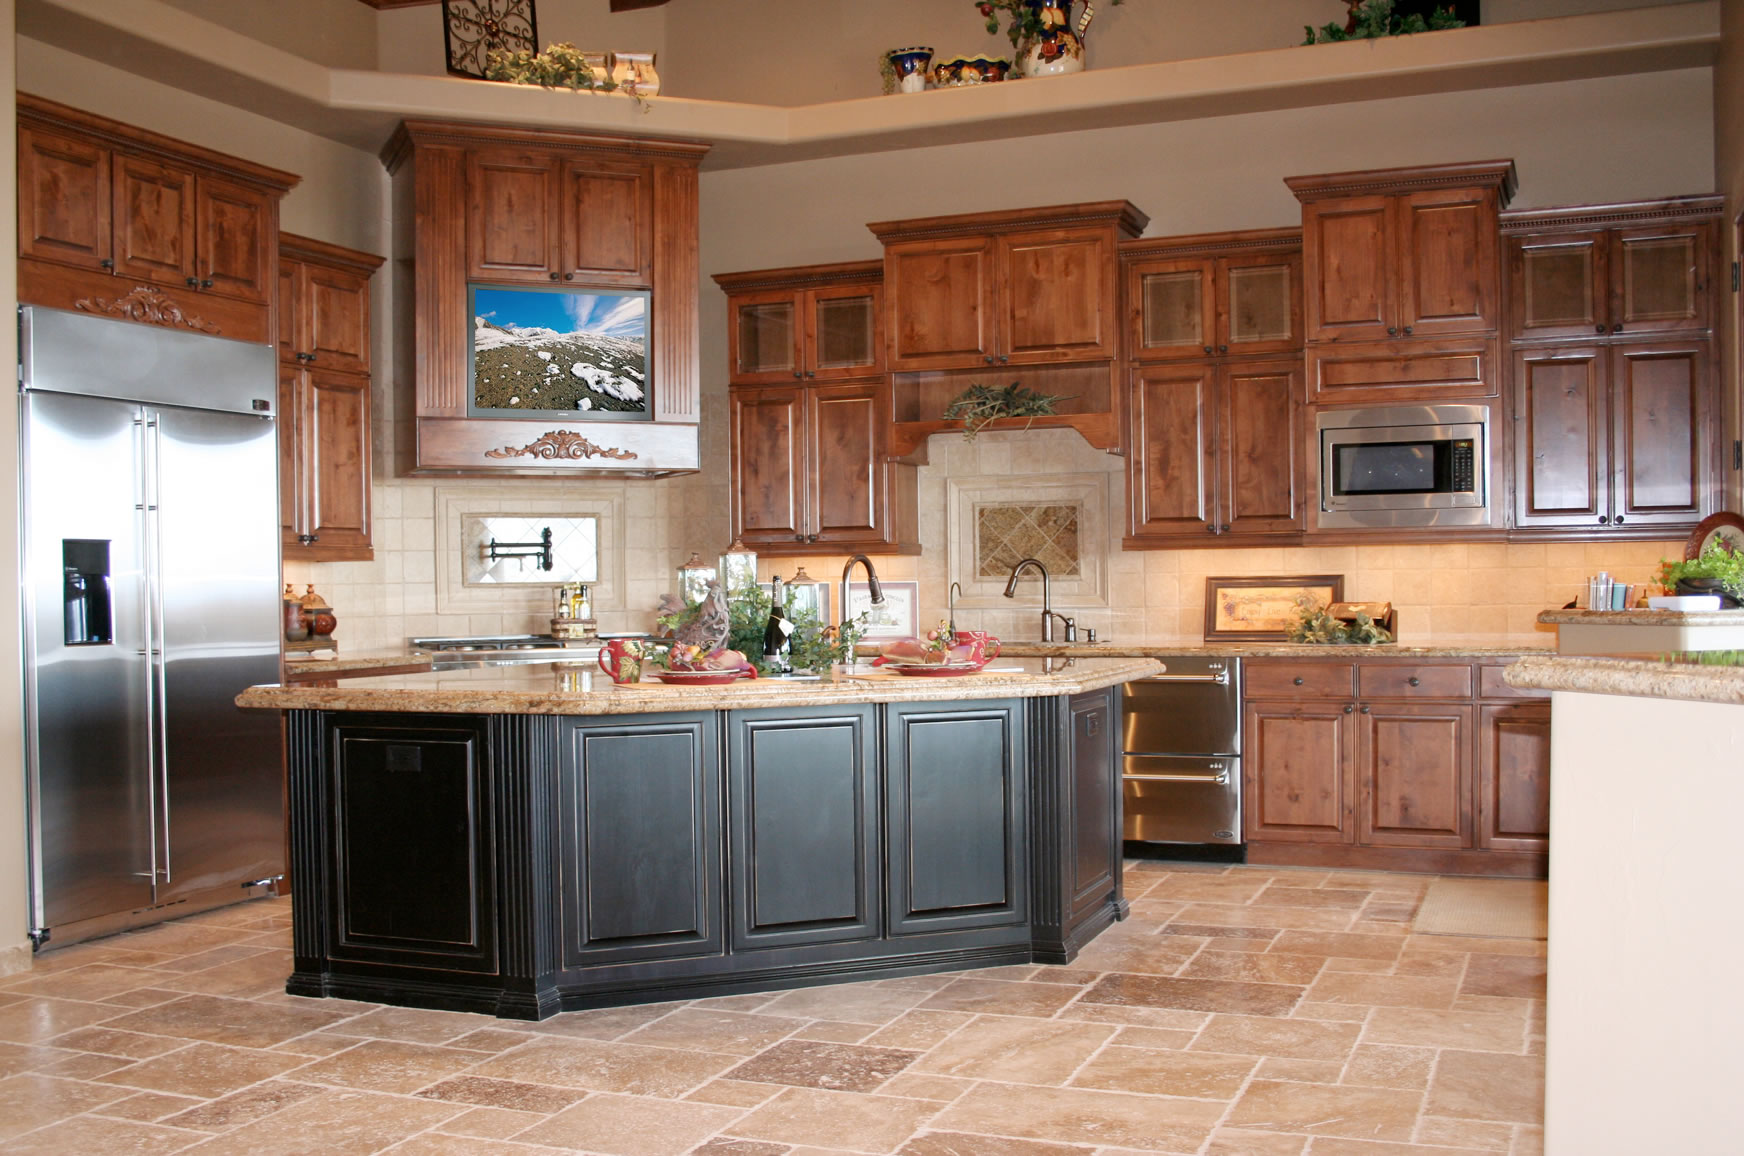 How to pick the best color for kitchen cabinets home and for Cabinetry kitchen cabinets